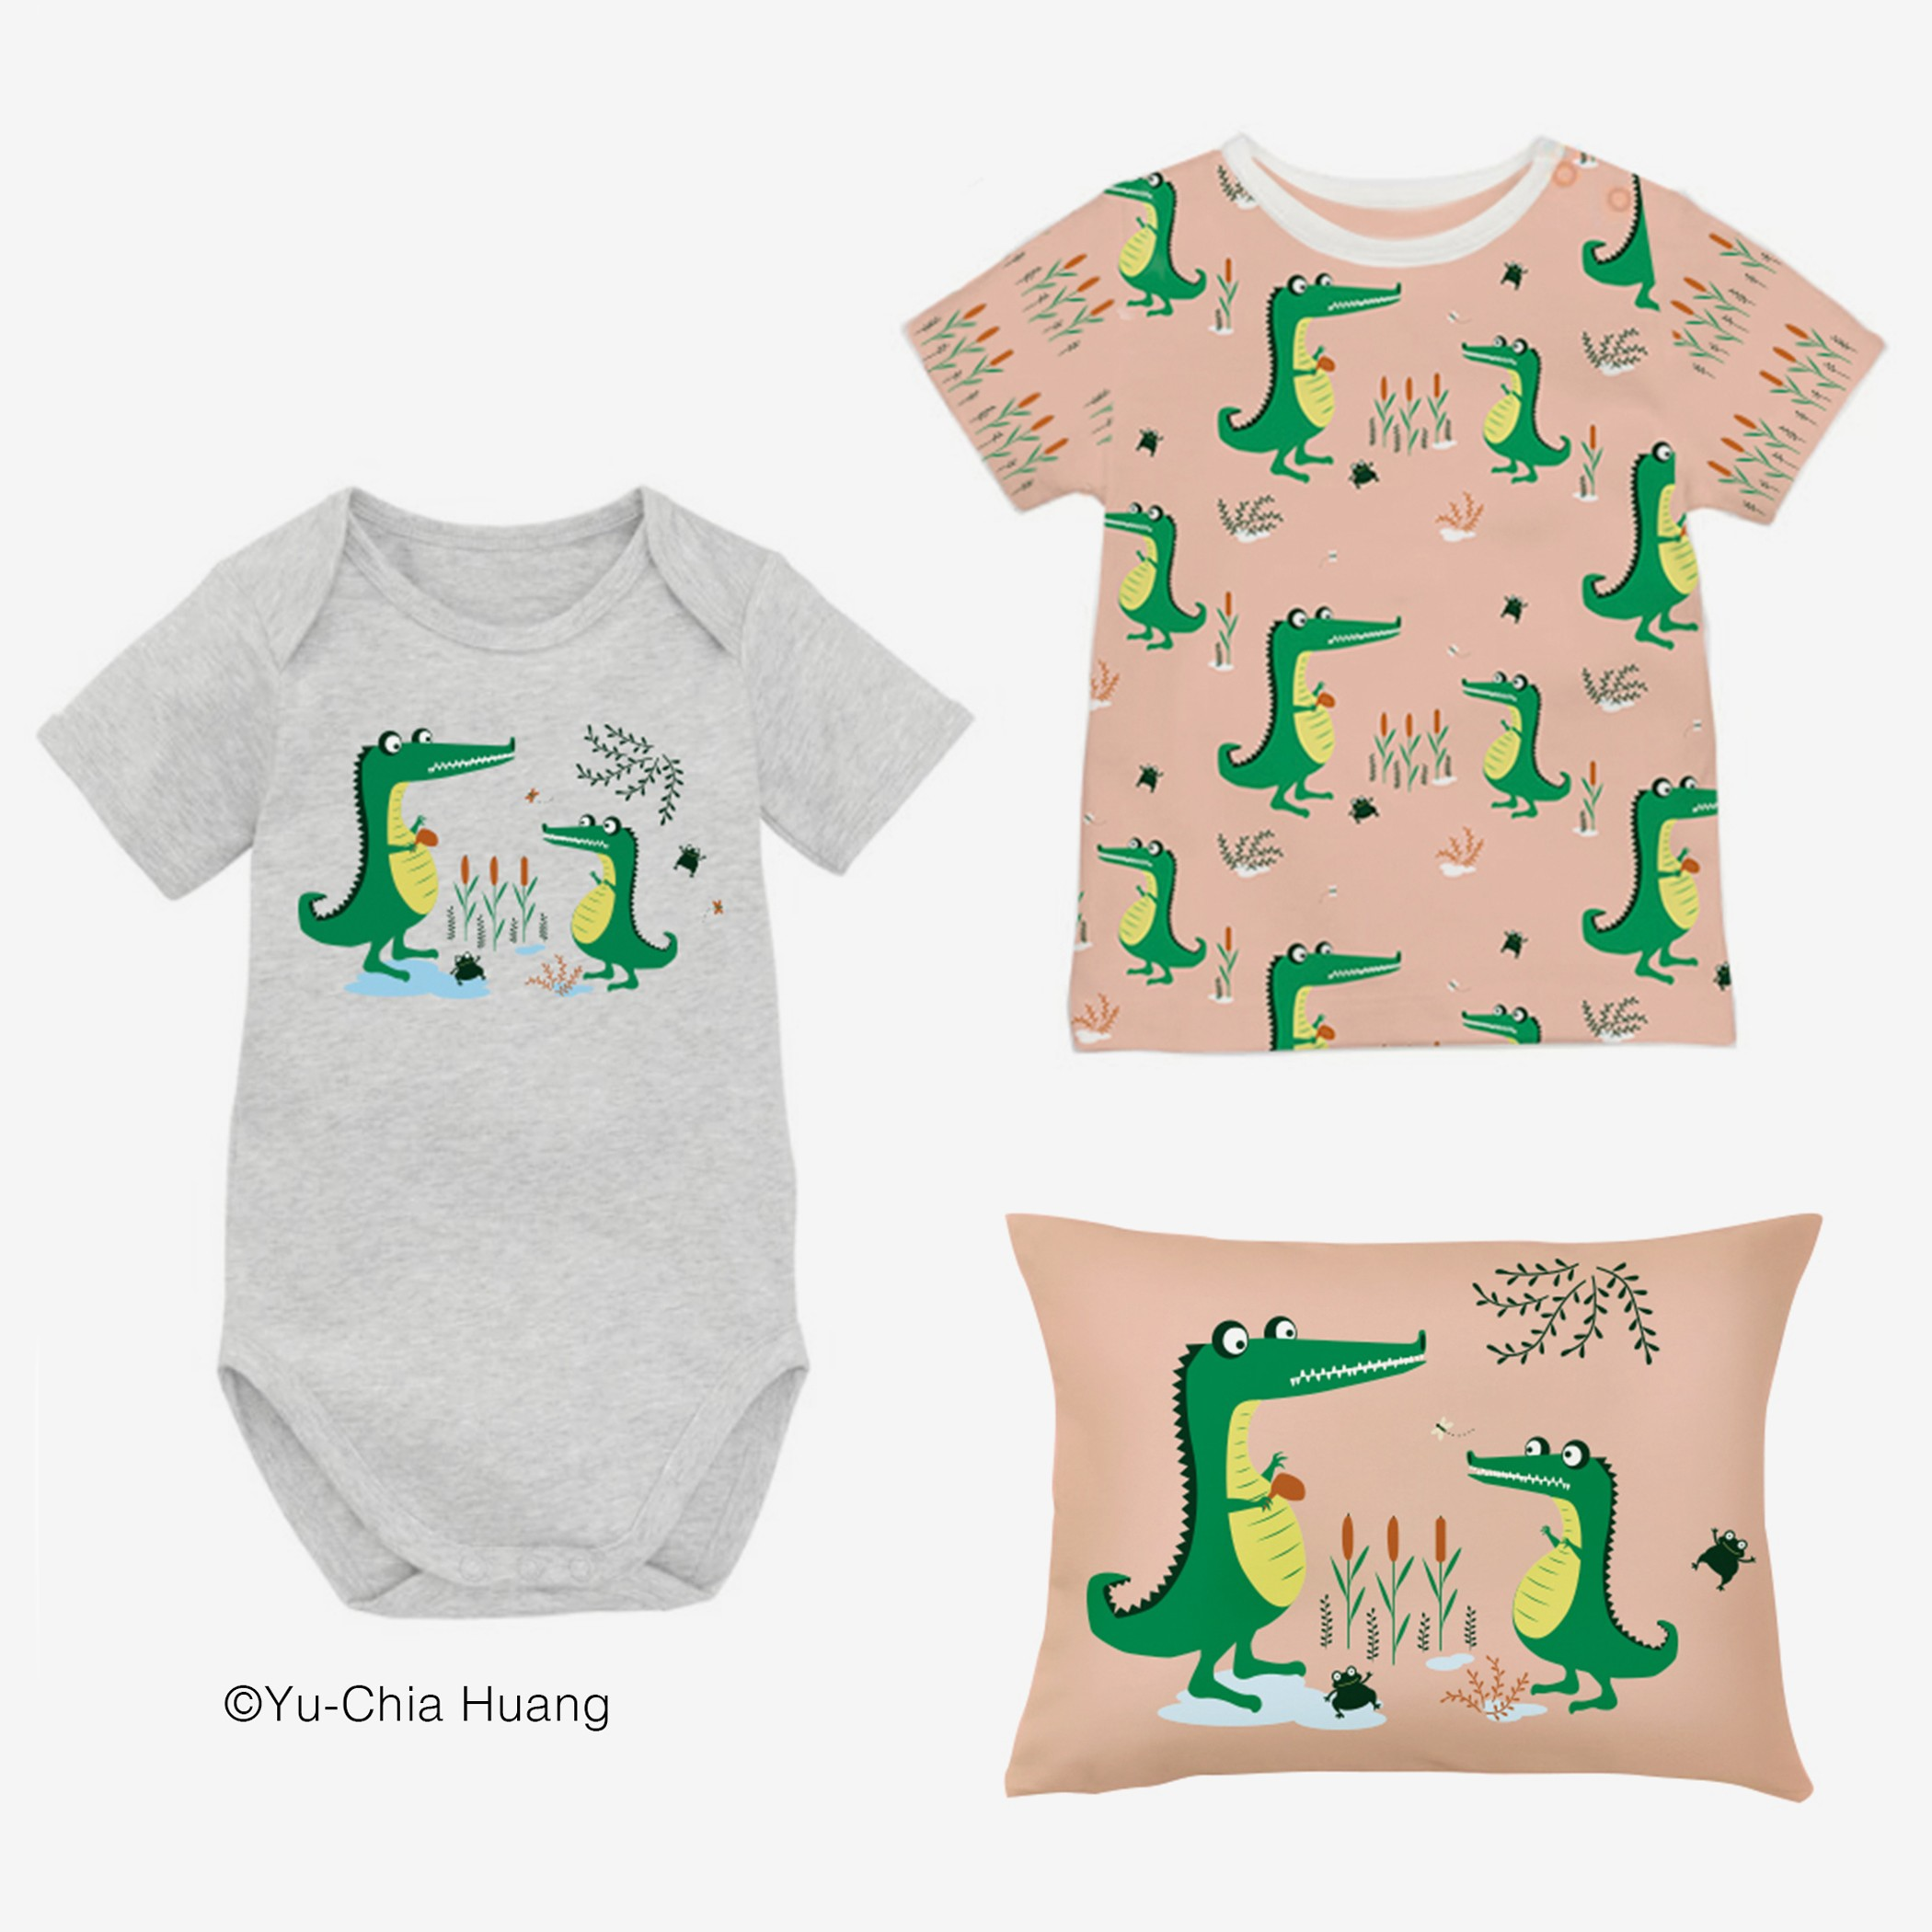 Cute Crocodiles patterns for kids